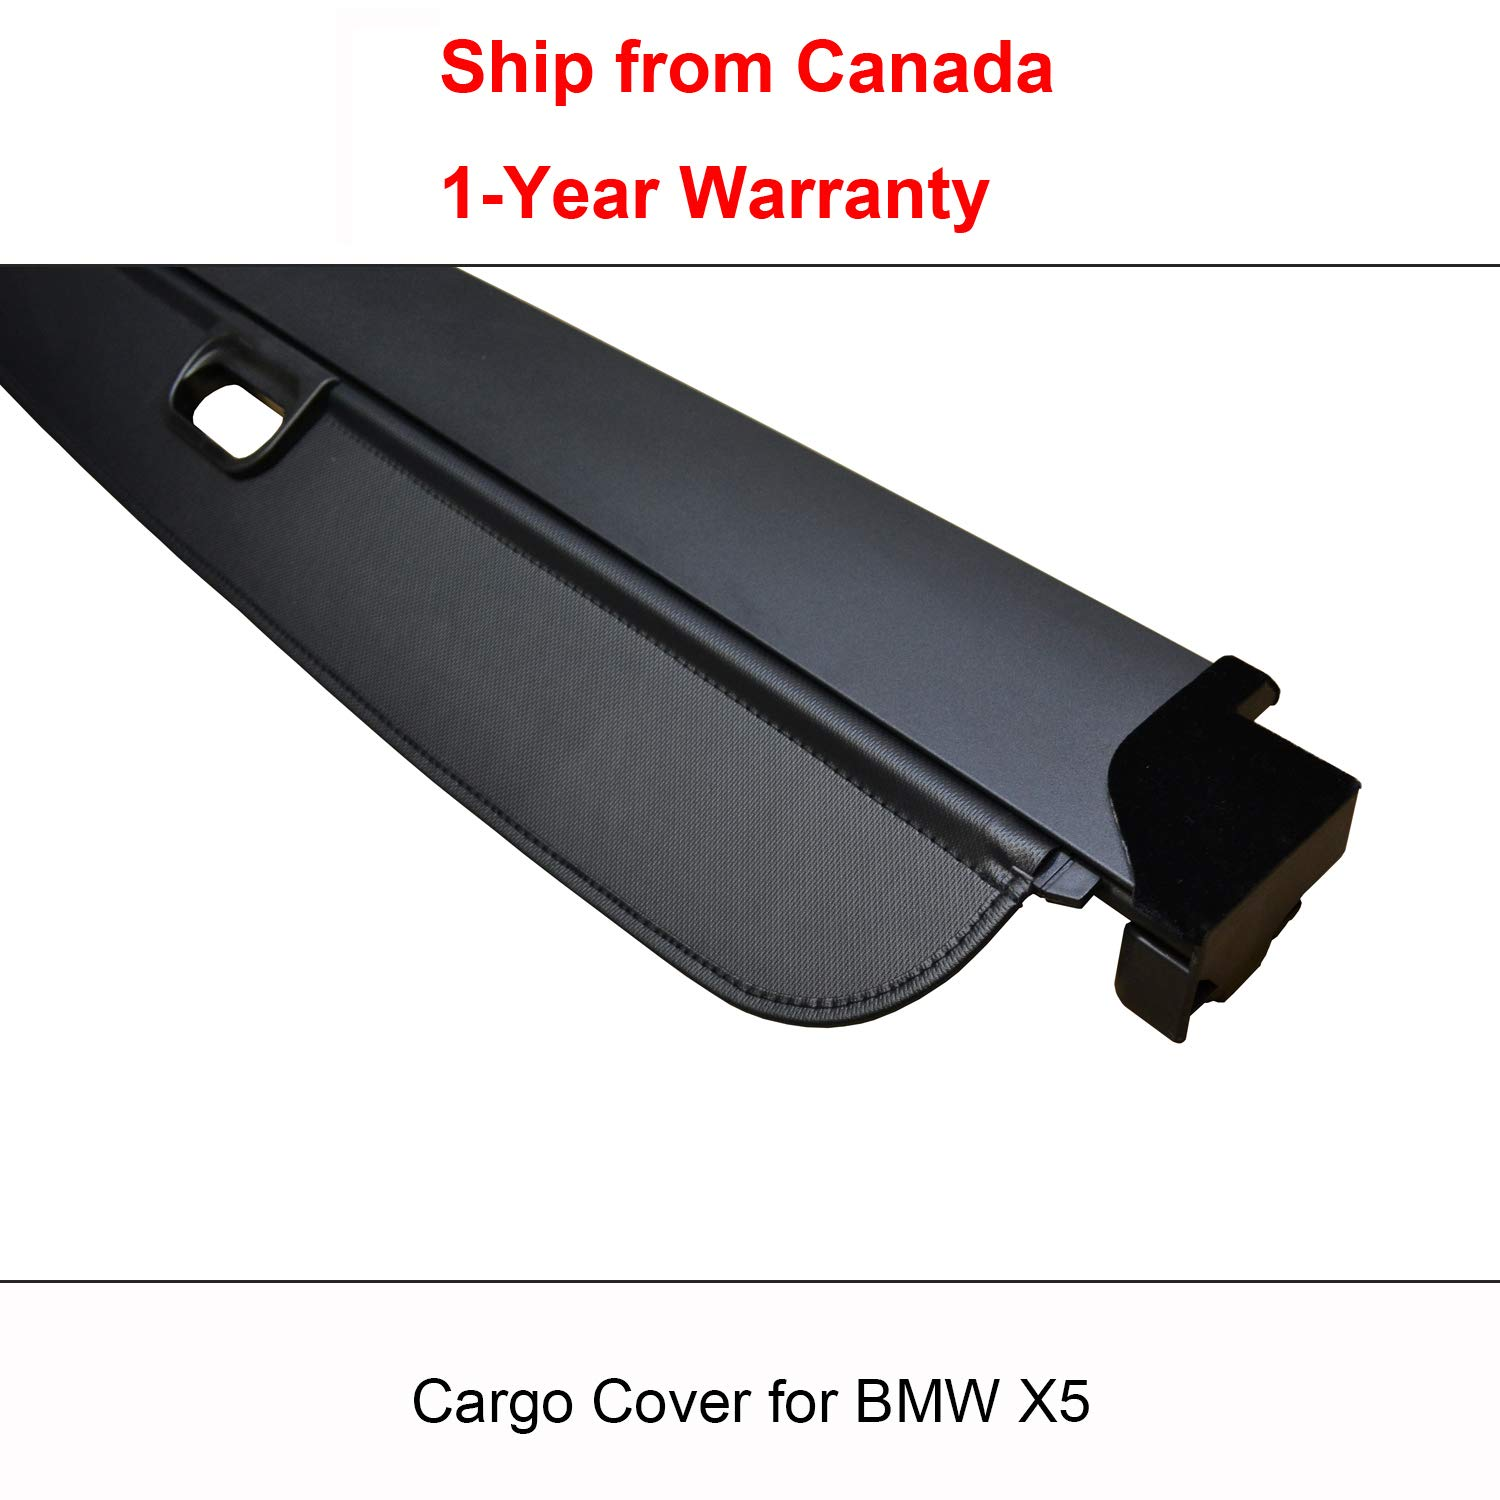 2014 2012 Ship from Canada 2013 2010 2017 2011 1-Year Warranty 2008 2007 2016 2015 Findway Black Retractable Rear Trunk Cargo Luggage Security Shade Cover Shield for BMW X5 2018 2009